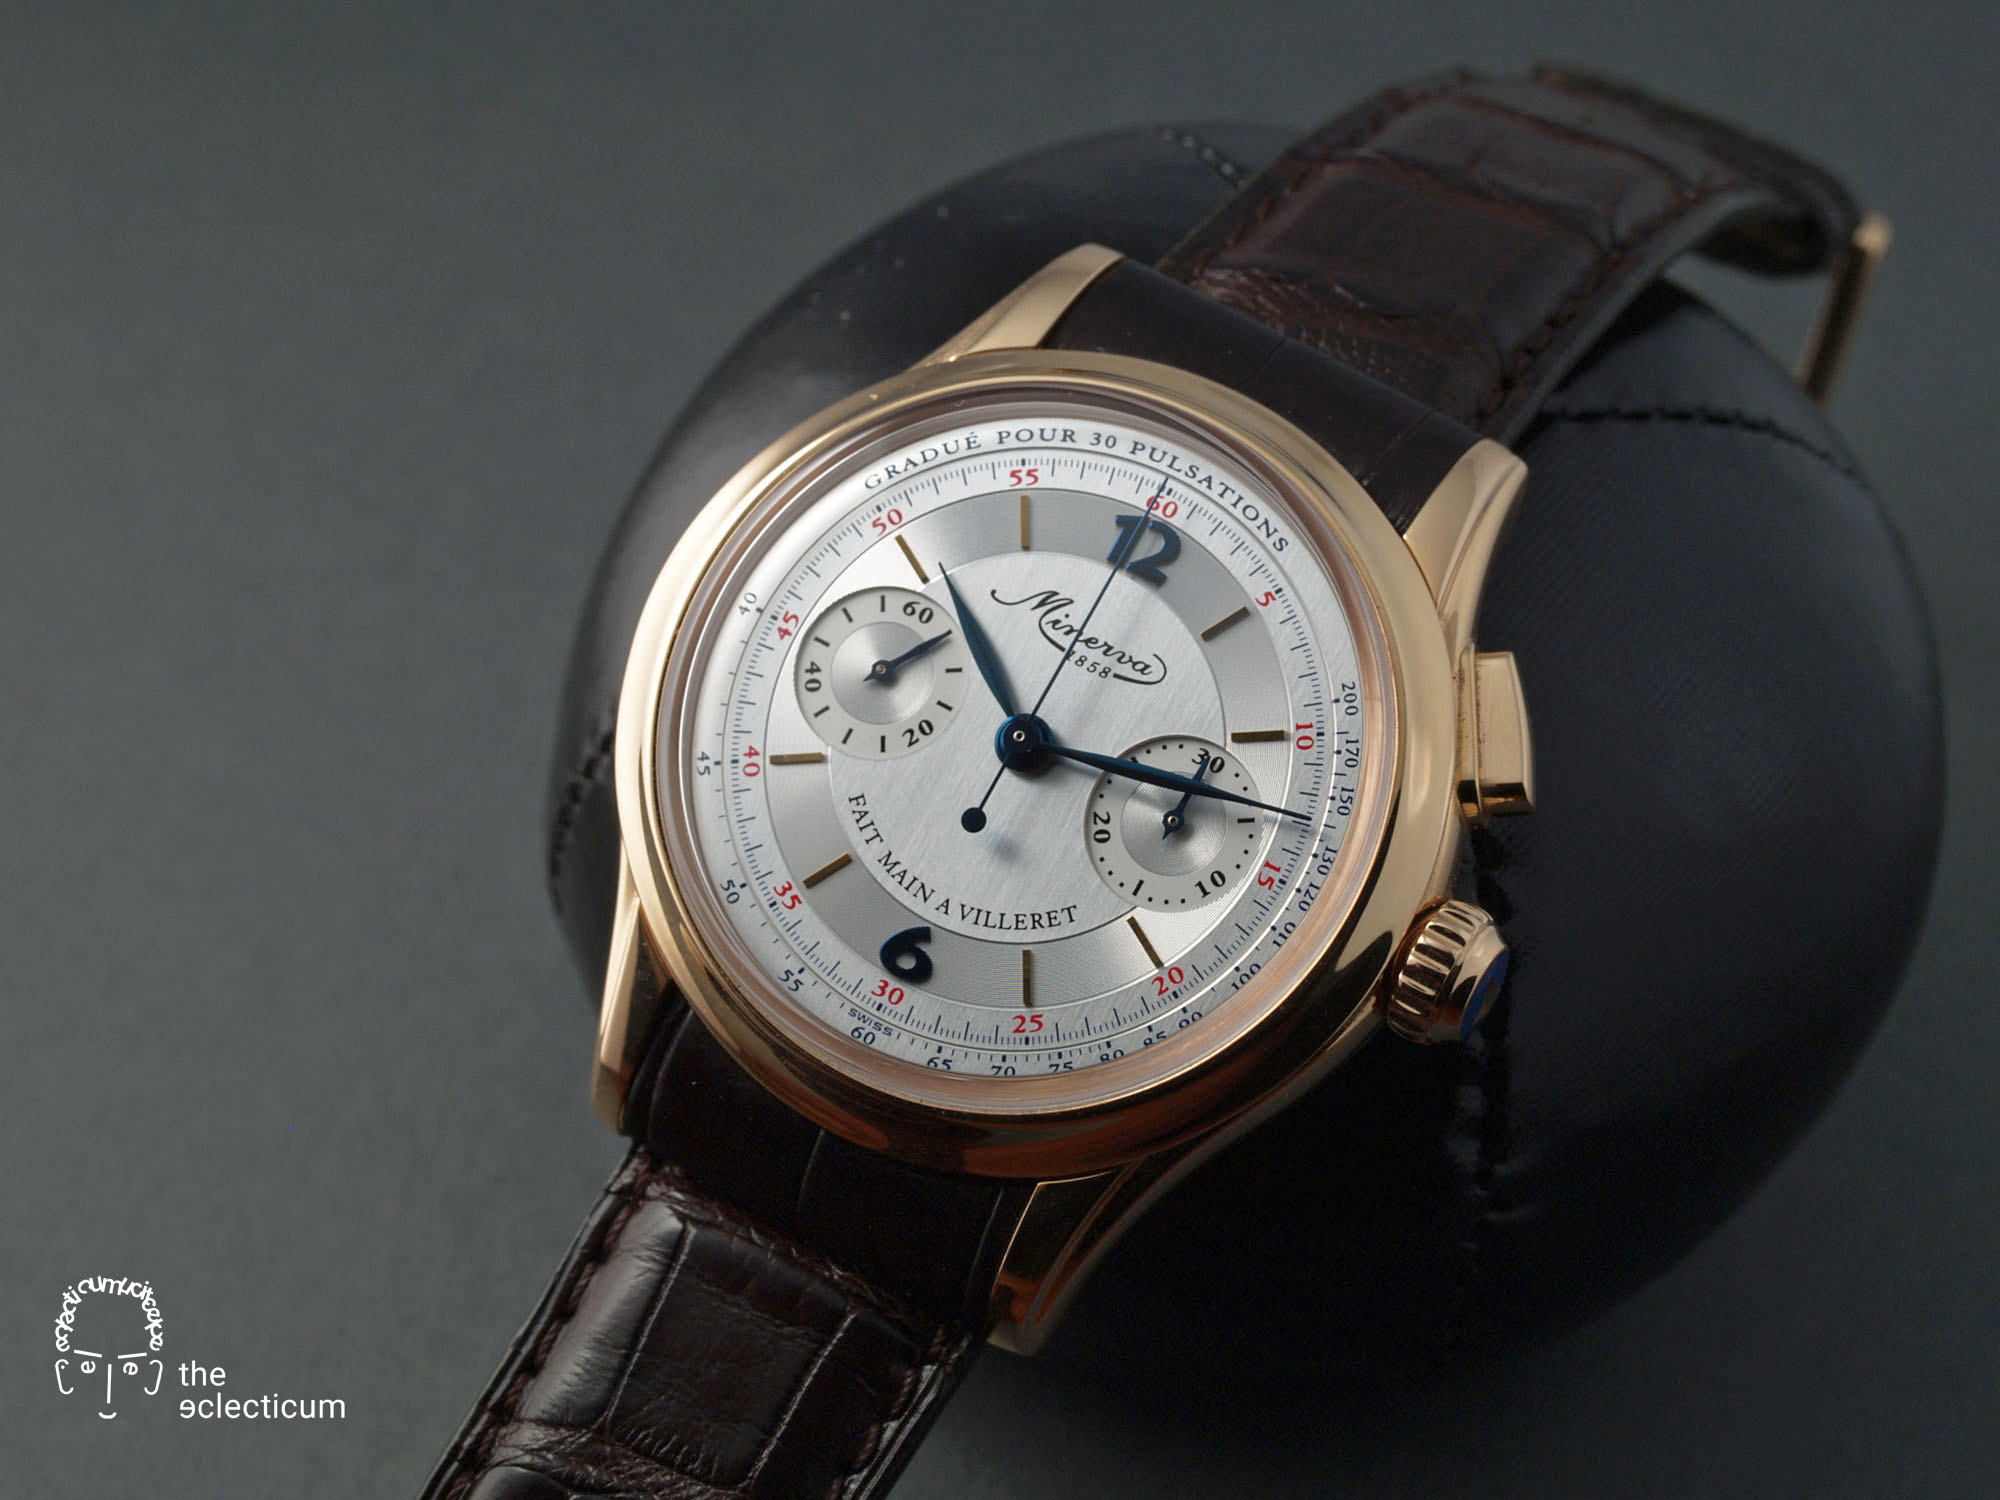 Minerva Chronograph Monopusher red gold Cal. 13-21 manufacture